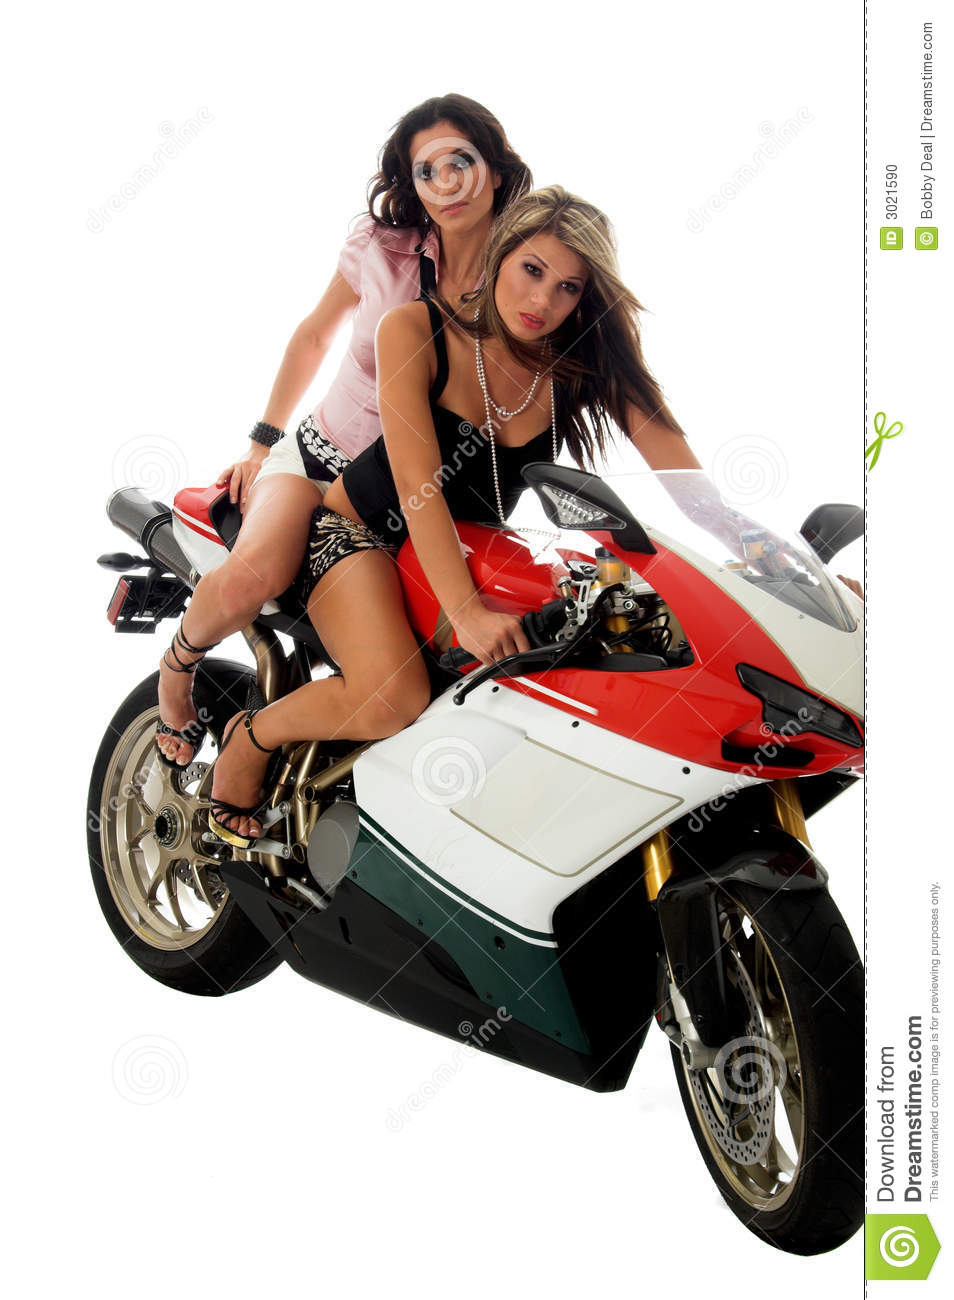 Motorcycle Hotties 85